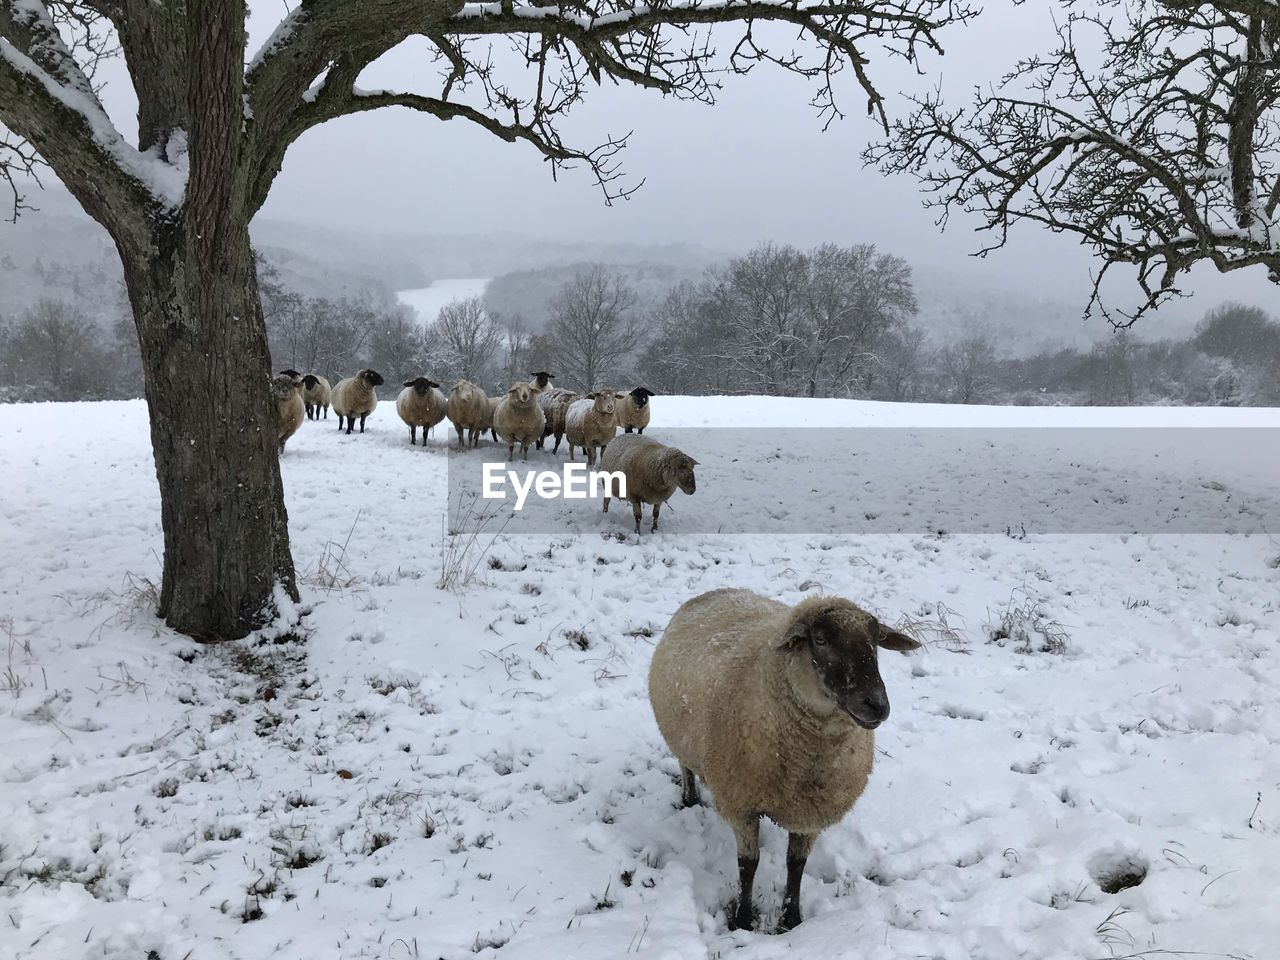 winter, snow, cold temperature, animal themes, tree, group of animals, animal, mammal, vertebrate, plant, field, land, animals in the wild, animal wildlife, nature, covering, beauty in nature, domestic animals, pets, no people, outdoors, herbivorous, snowcapped mountain